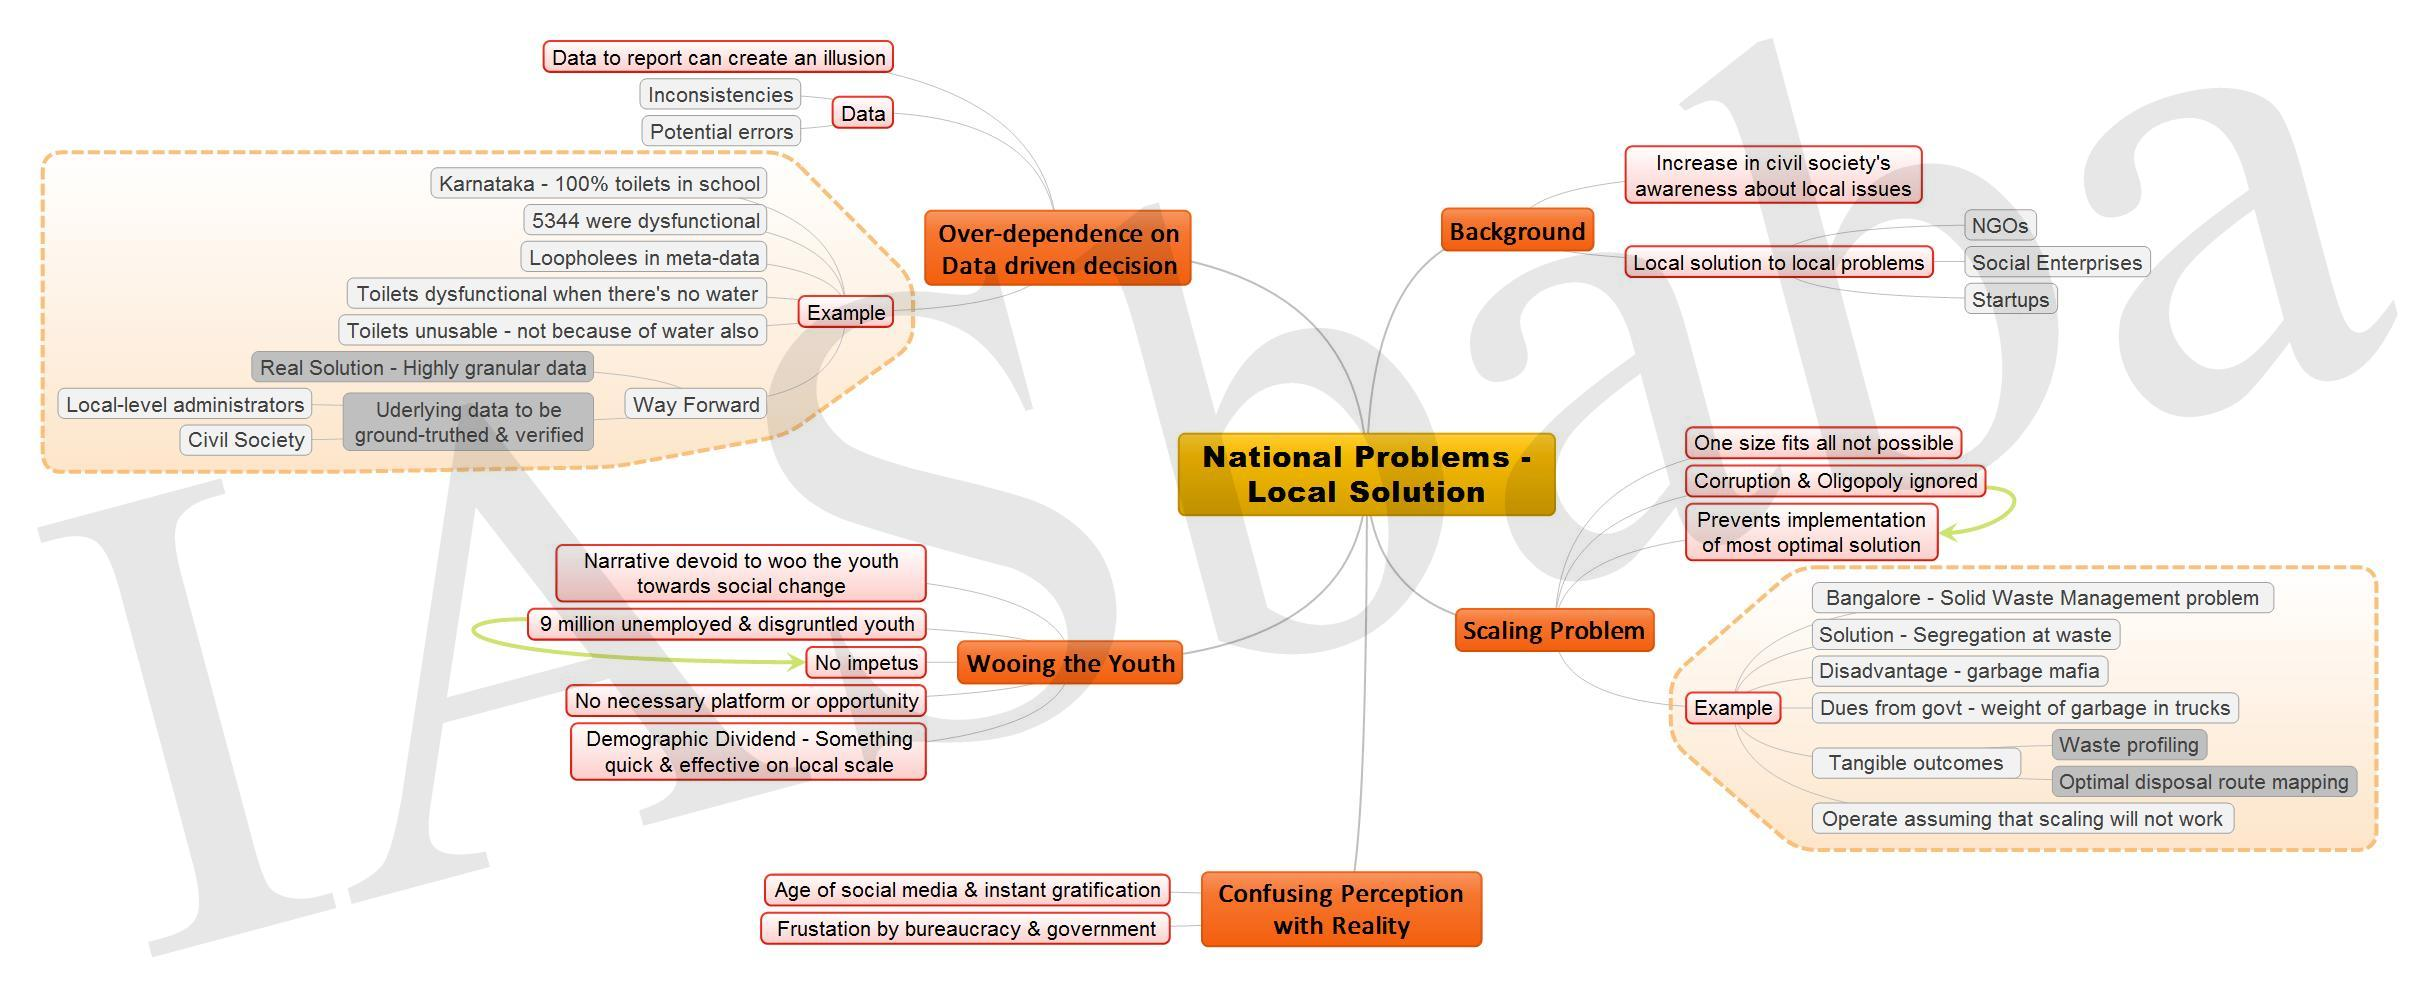 National Problems Local Solution JPEG